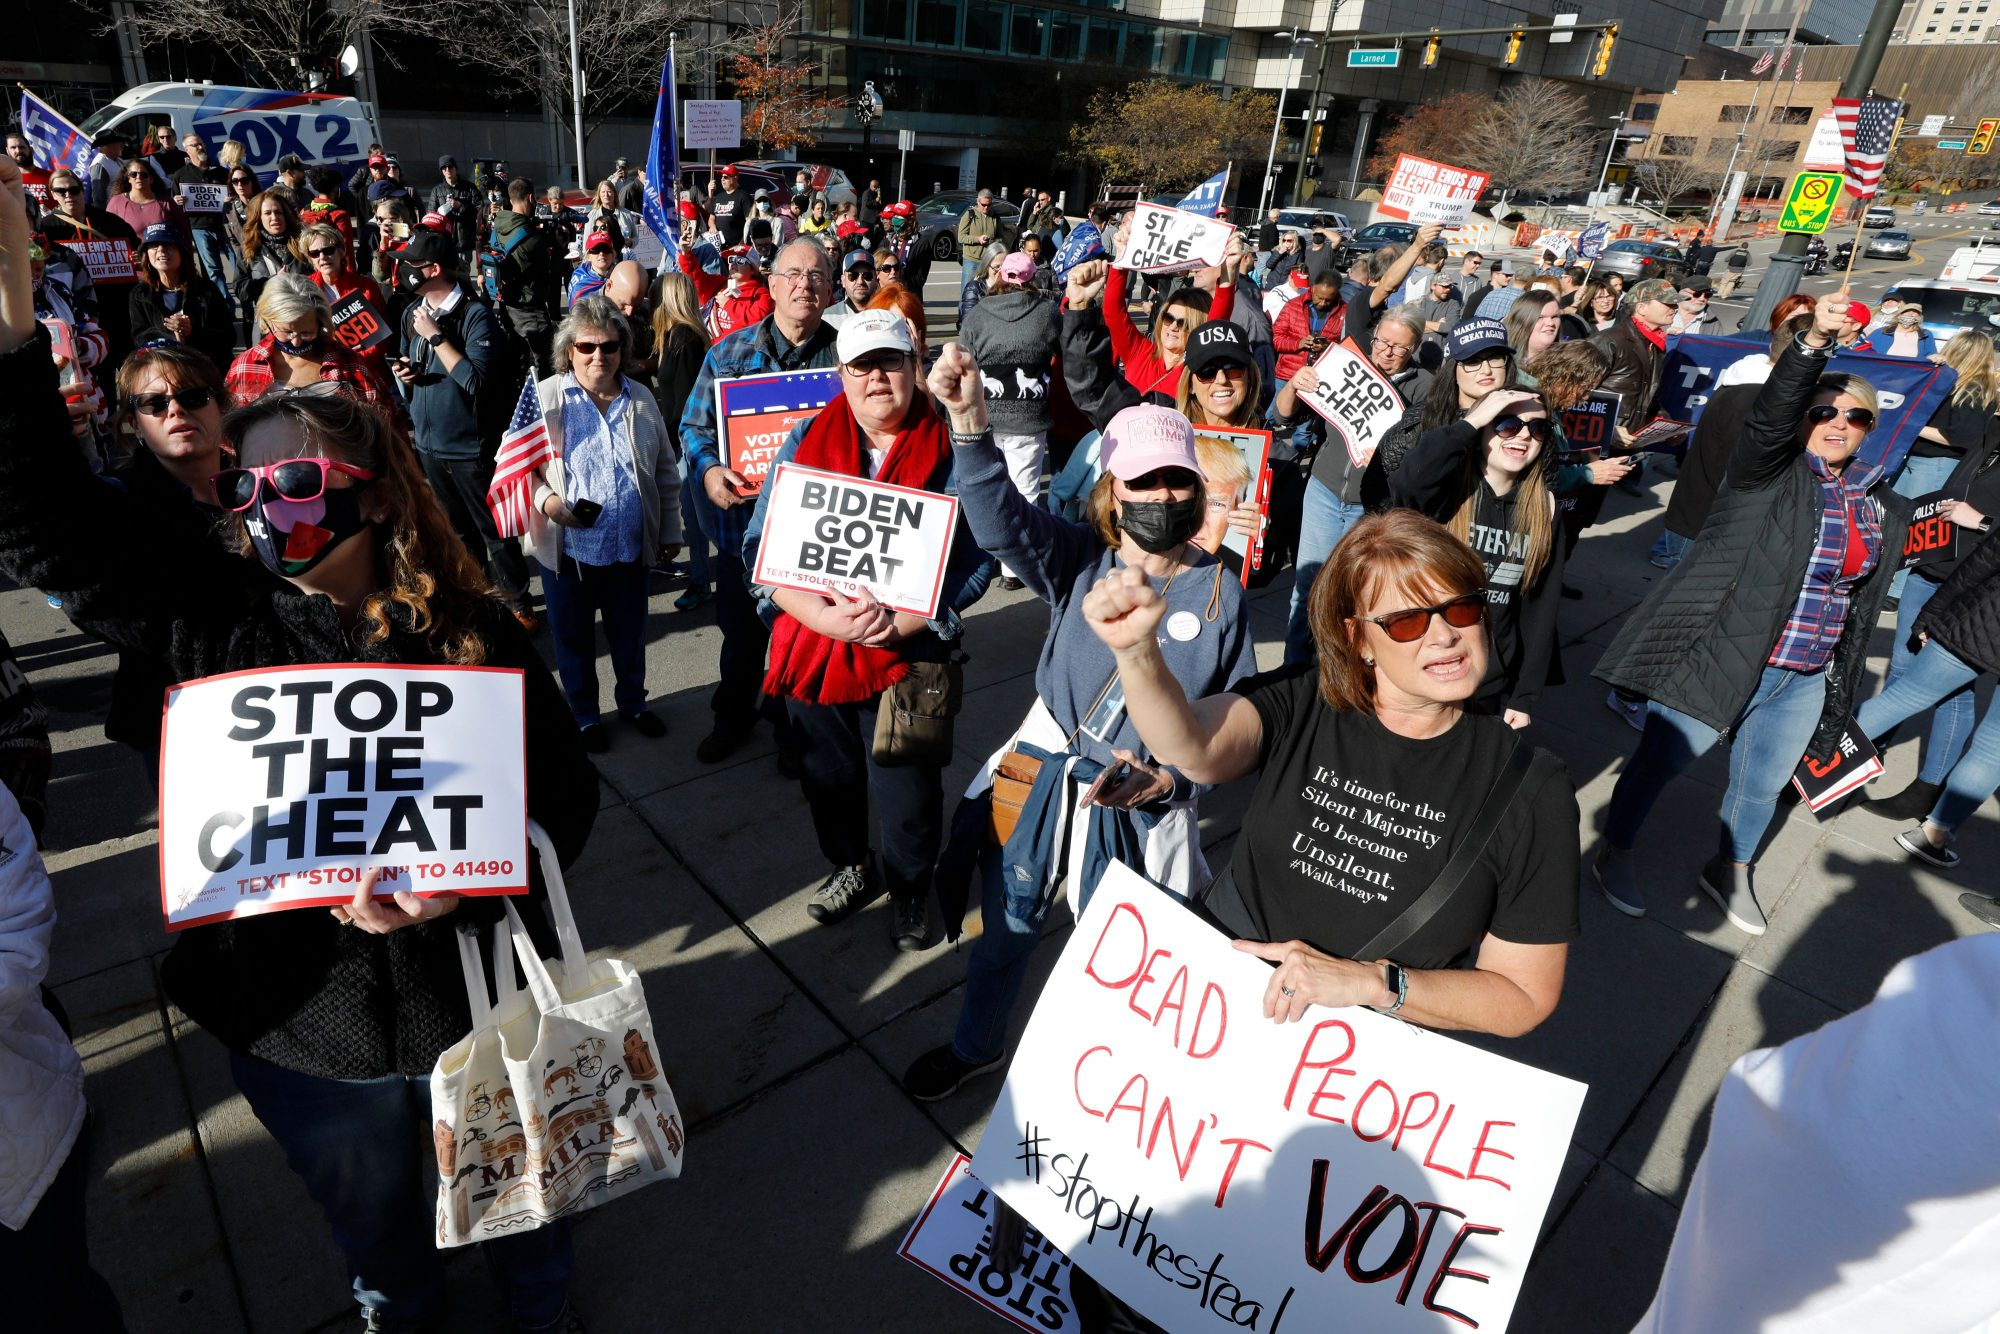 donald trump stop the cheat protesters in november 2020